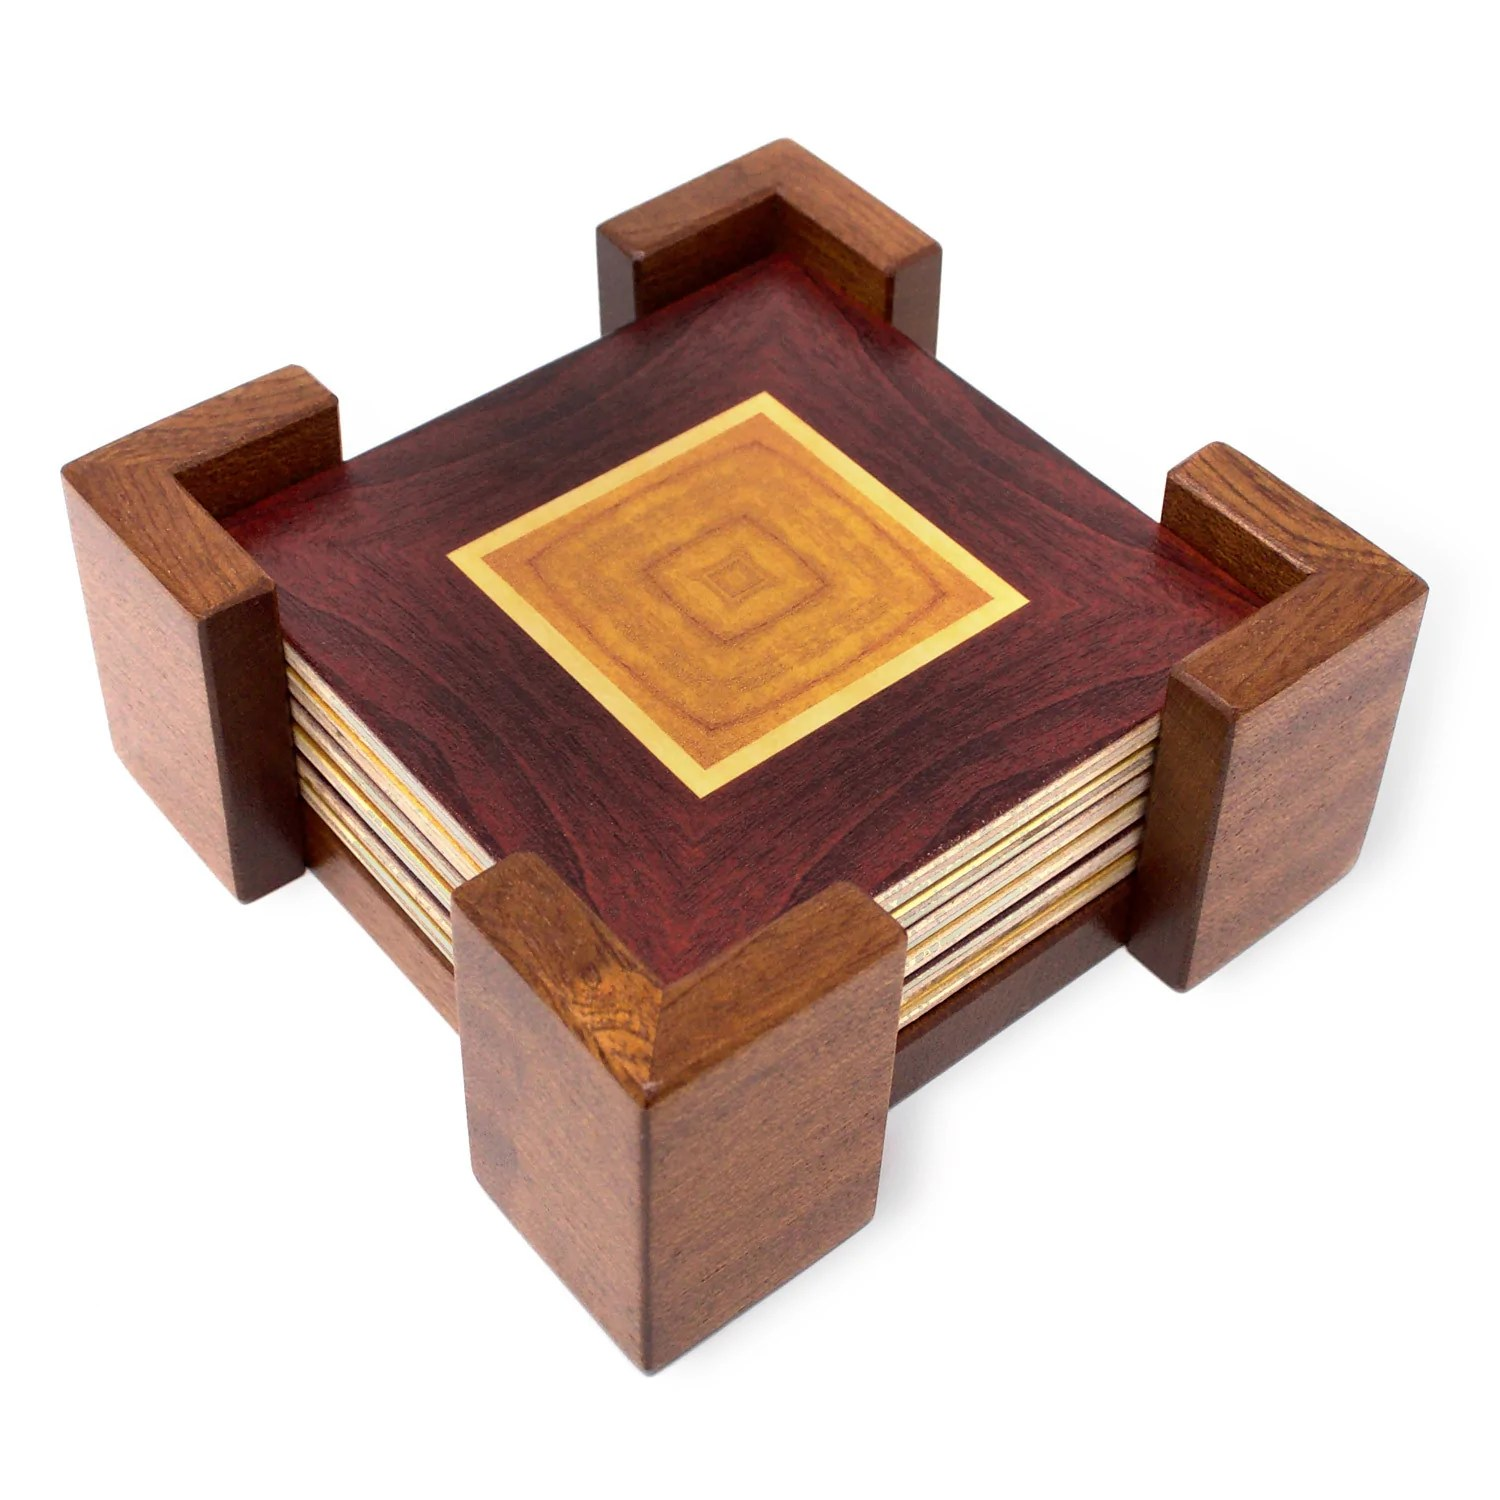 Wooden Coaster Holder Adapted From Unique Woodworking Patterns By Mitercraft Set Of 4 Or 6 Wood Coasters With Optional Holders Set 01